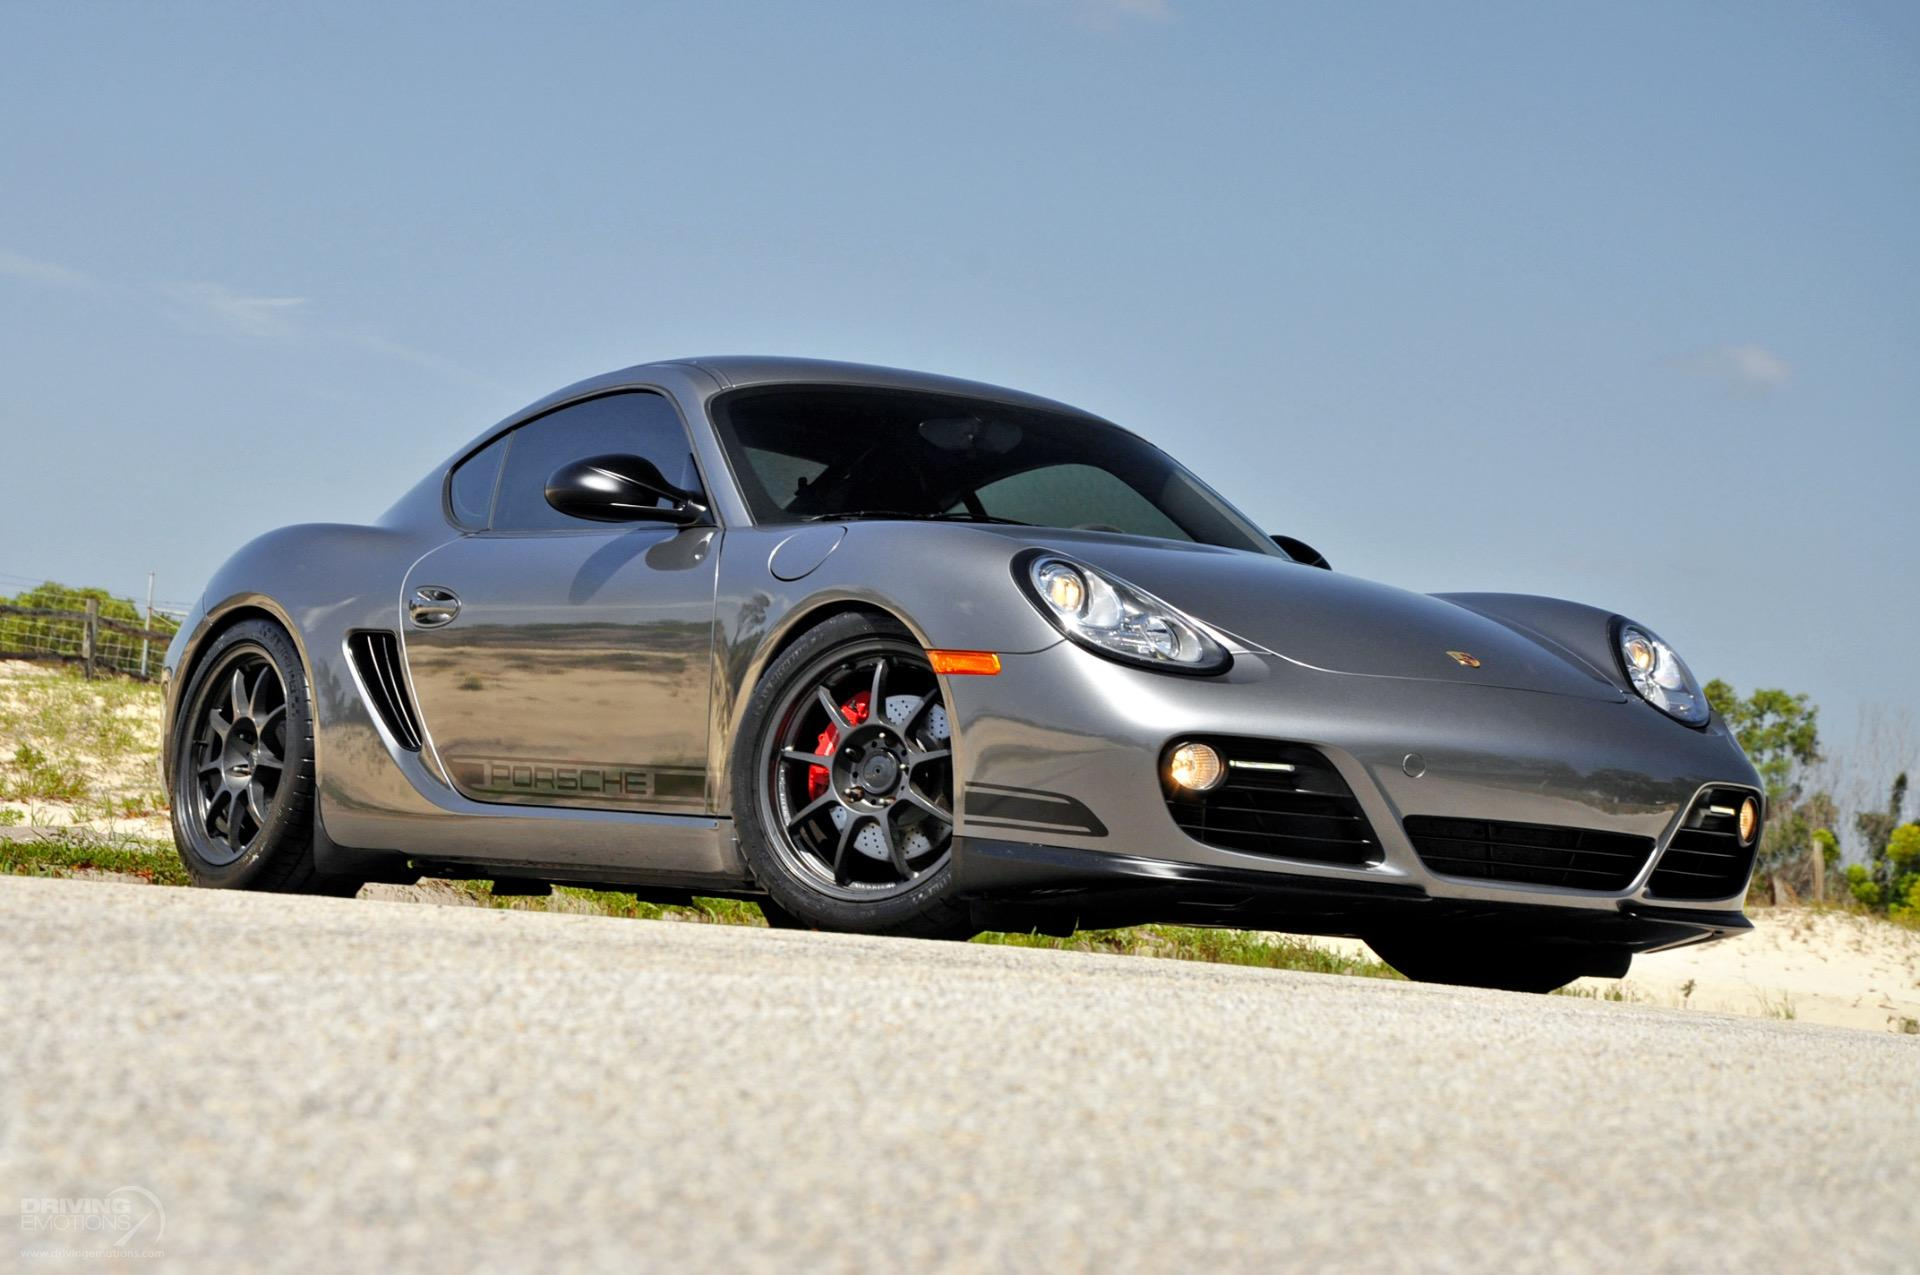 2012 porsche cayman r r stock 6026 for sale near lake. Black Bedroom Furniture Sets. Home Design Ideas